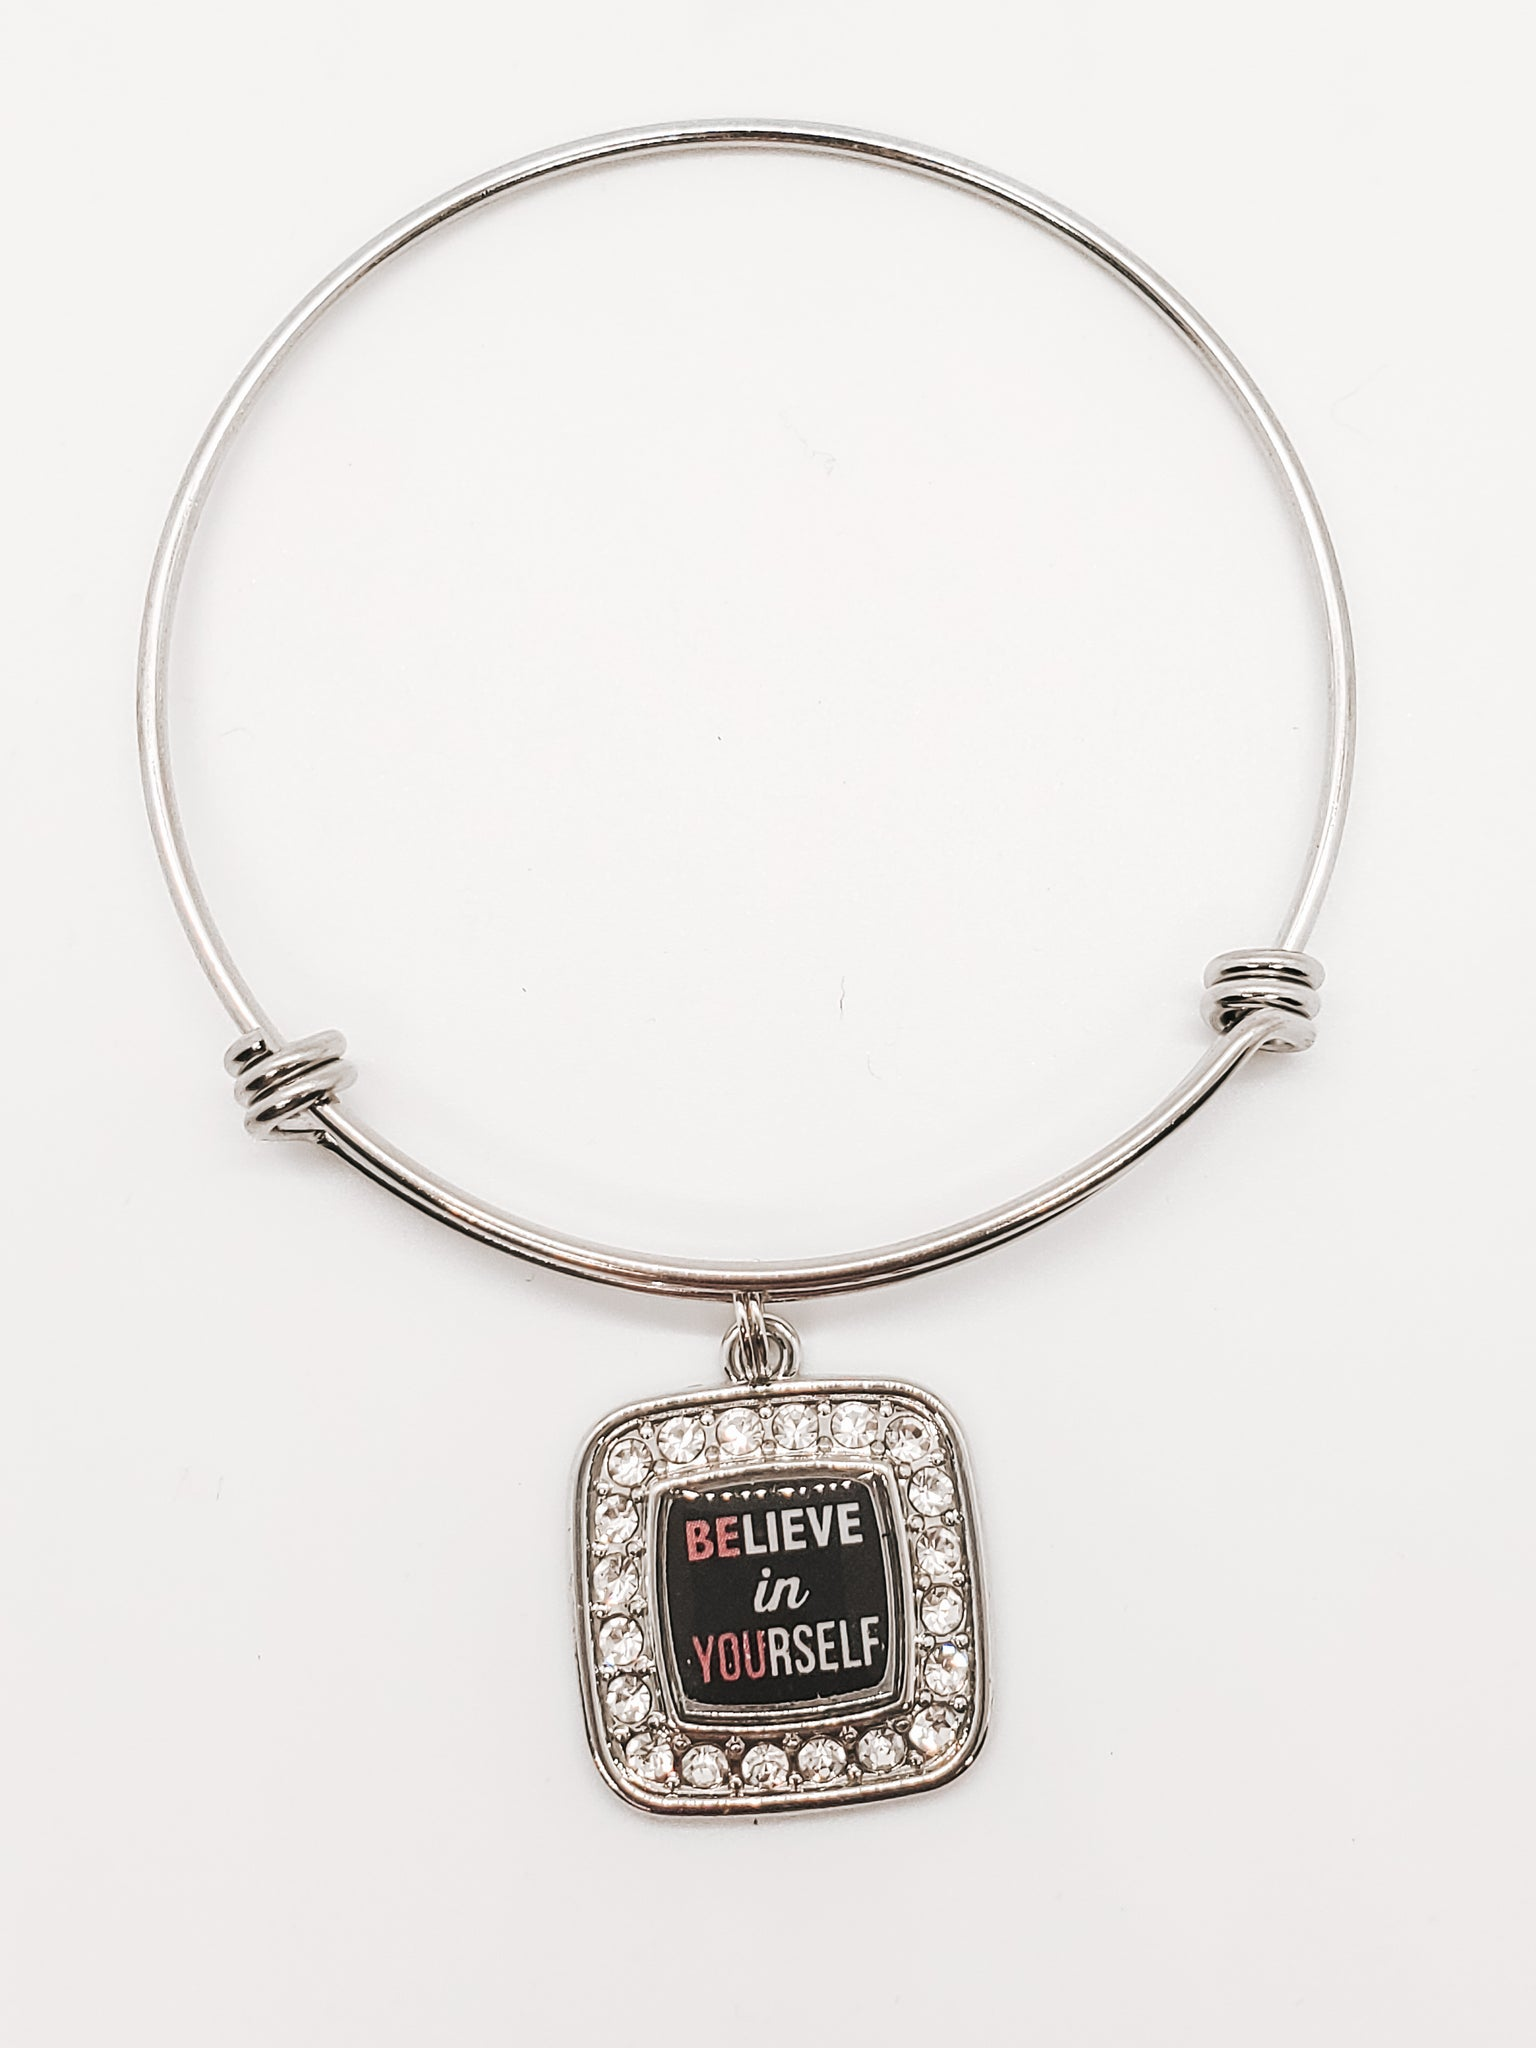 Believe In Yourself Charm Bracelet Bangle Stainless Steel Silver